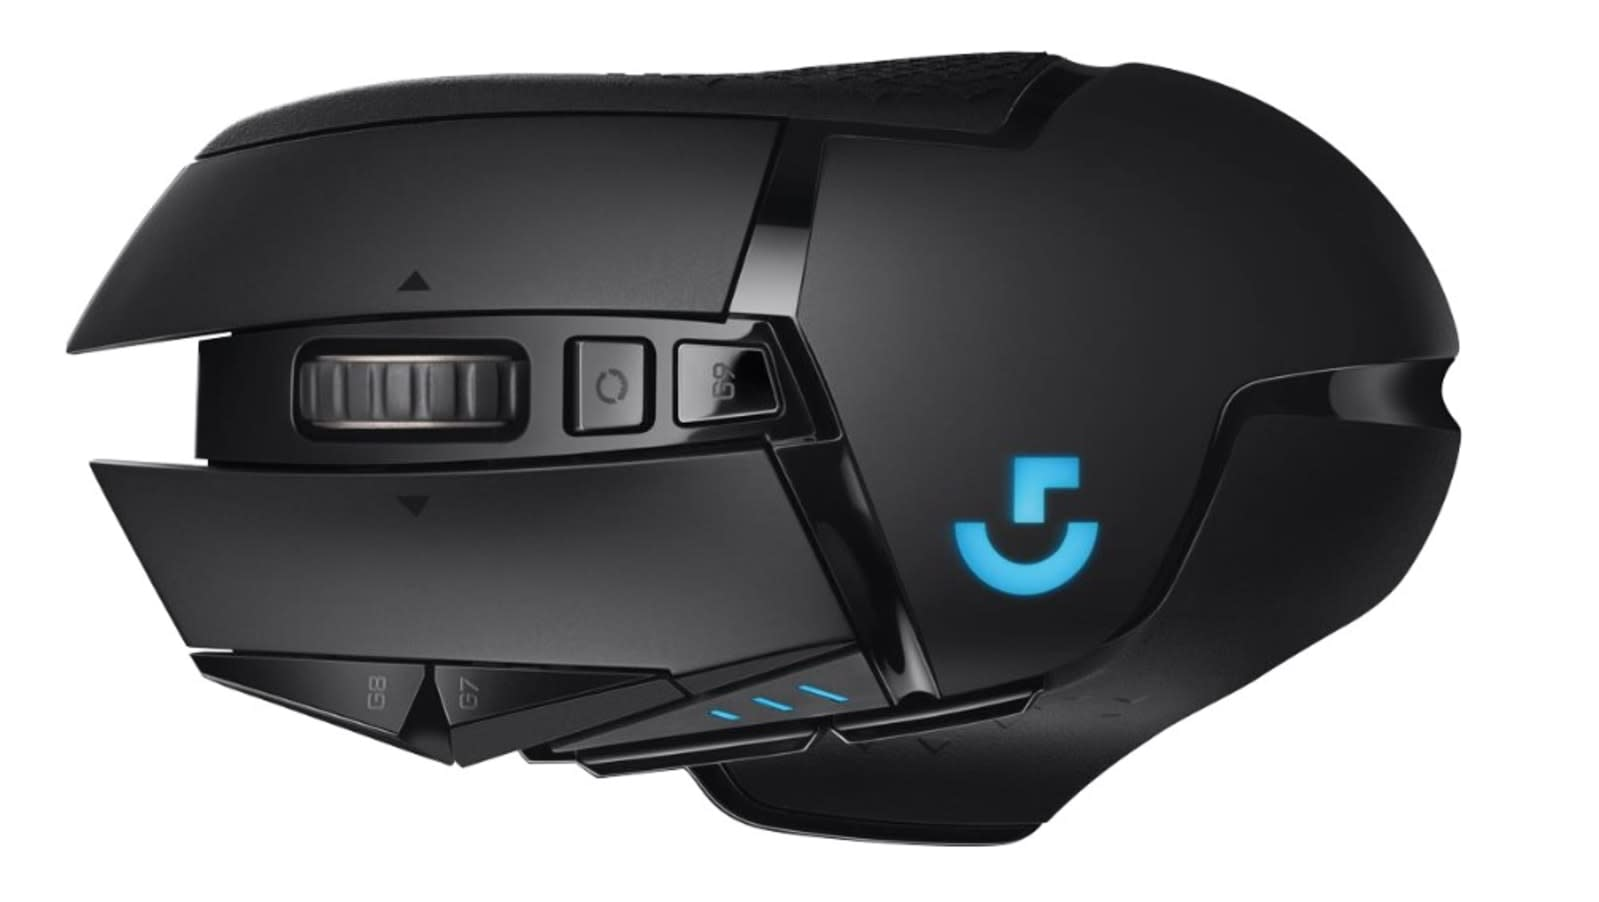 052c80aeda4 Logitech unveils a wireless version of its G502 gaming mouse